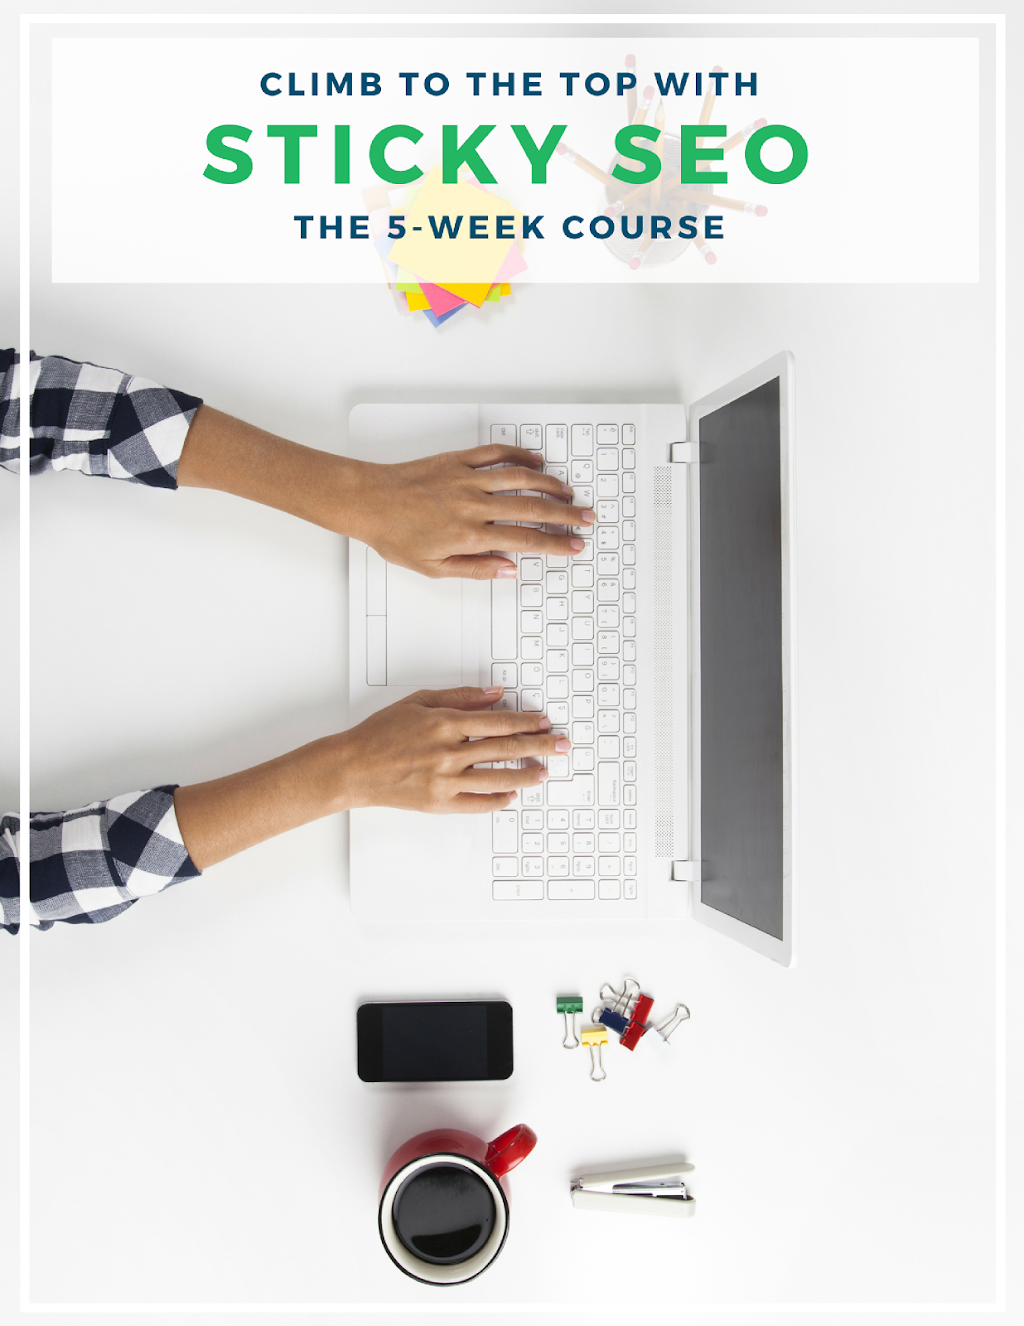 The Sticky SEO Course